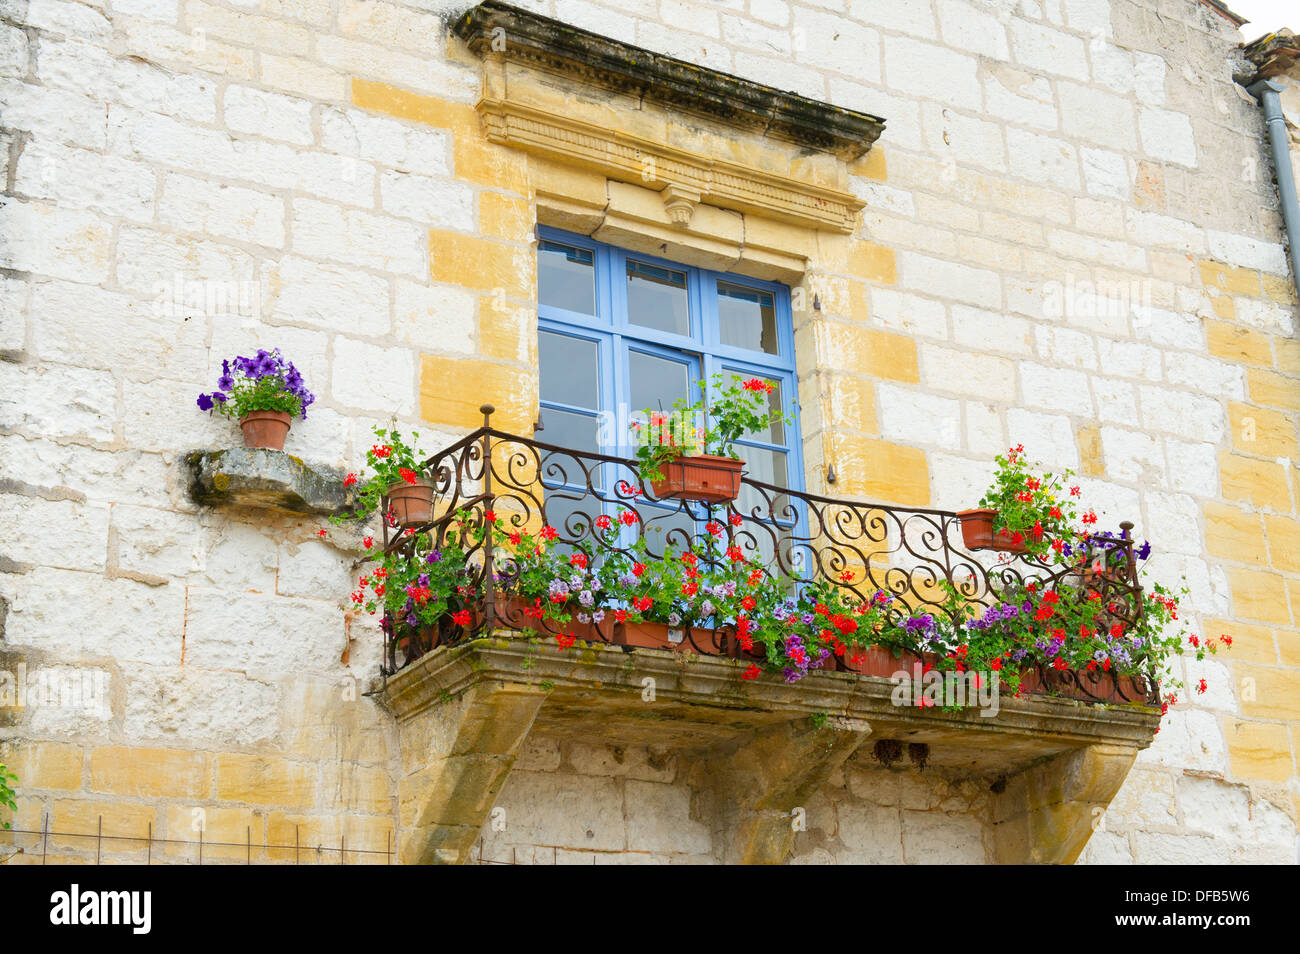 French balcony with flowers stock photo royalty free for French balcony